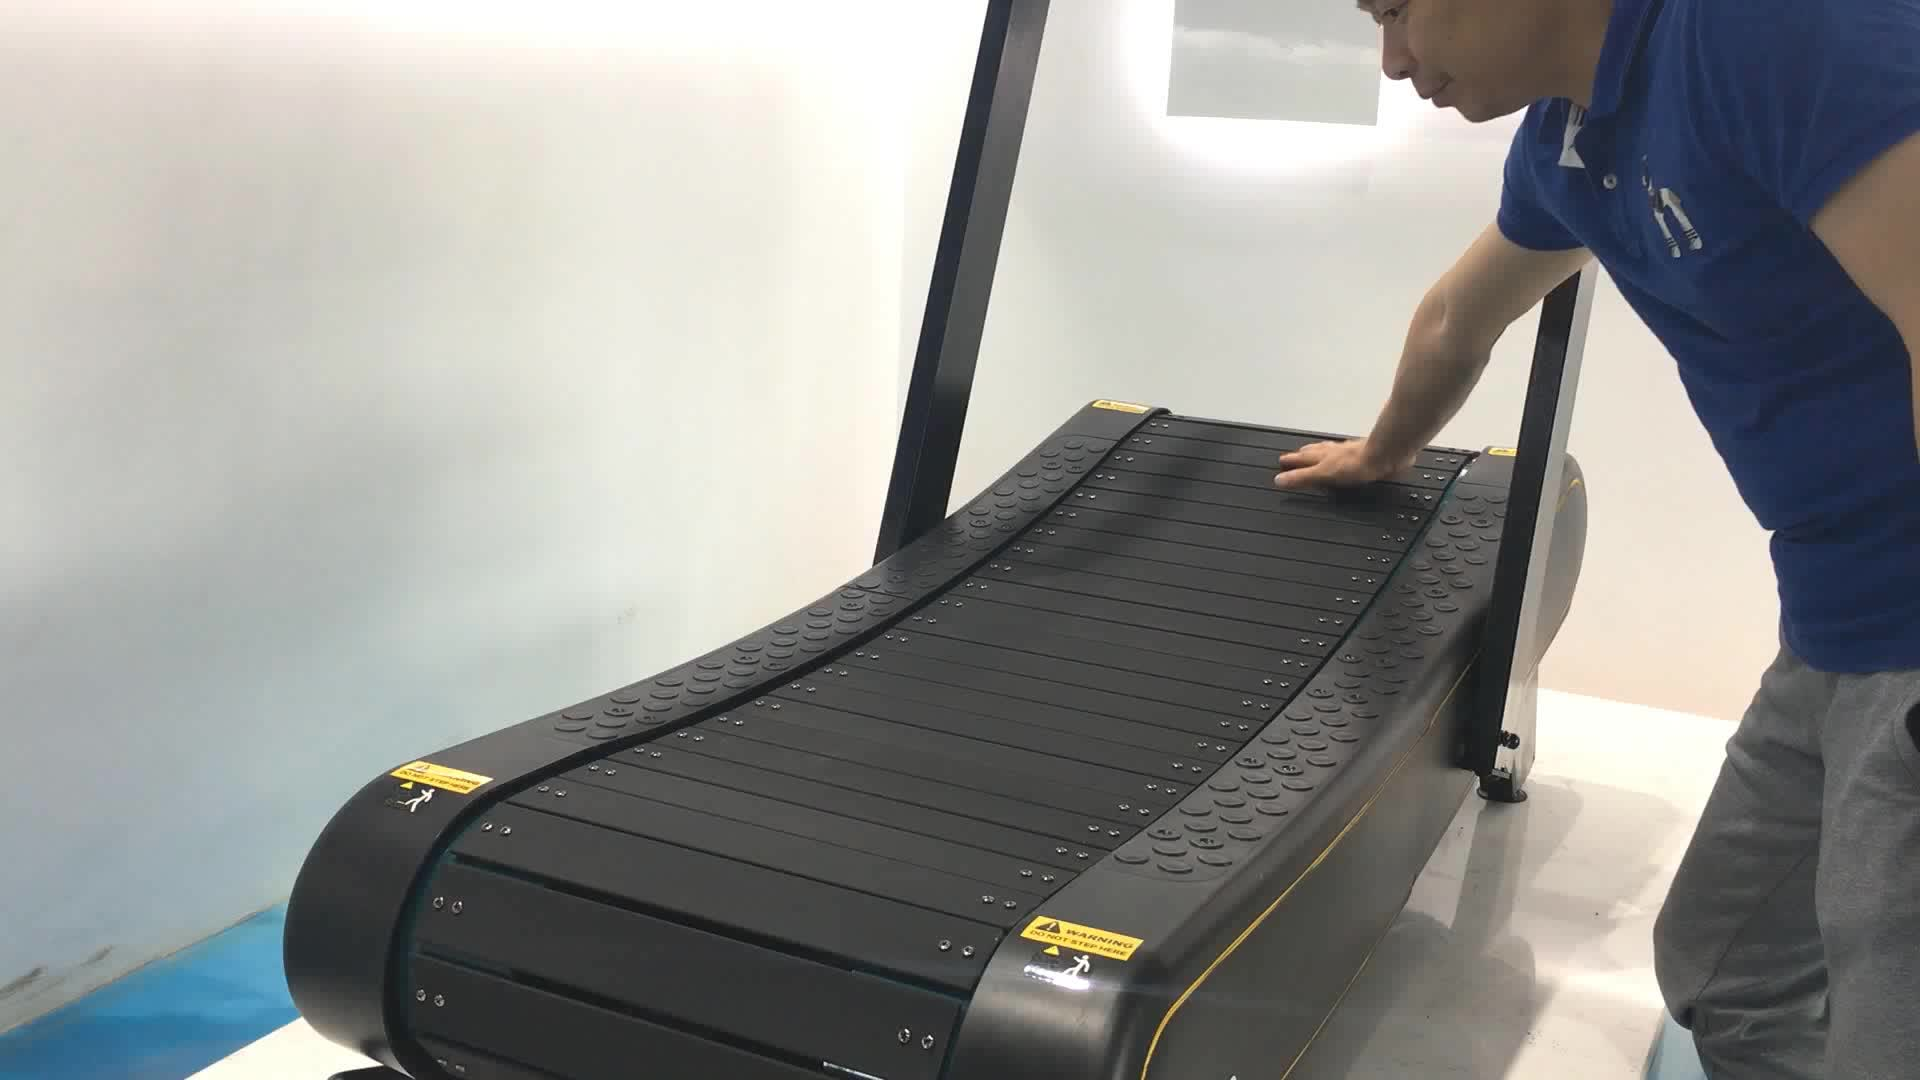 Gym fitness economic commercial woodway รูปแบบมอเตอร์คู่มือ curve treadmill เครื่อง treadmill home